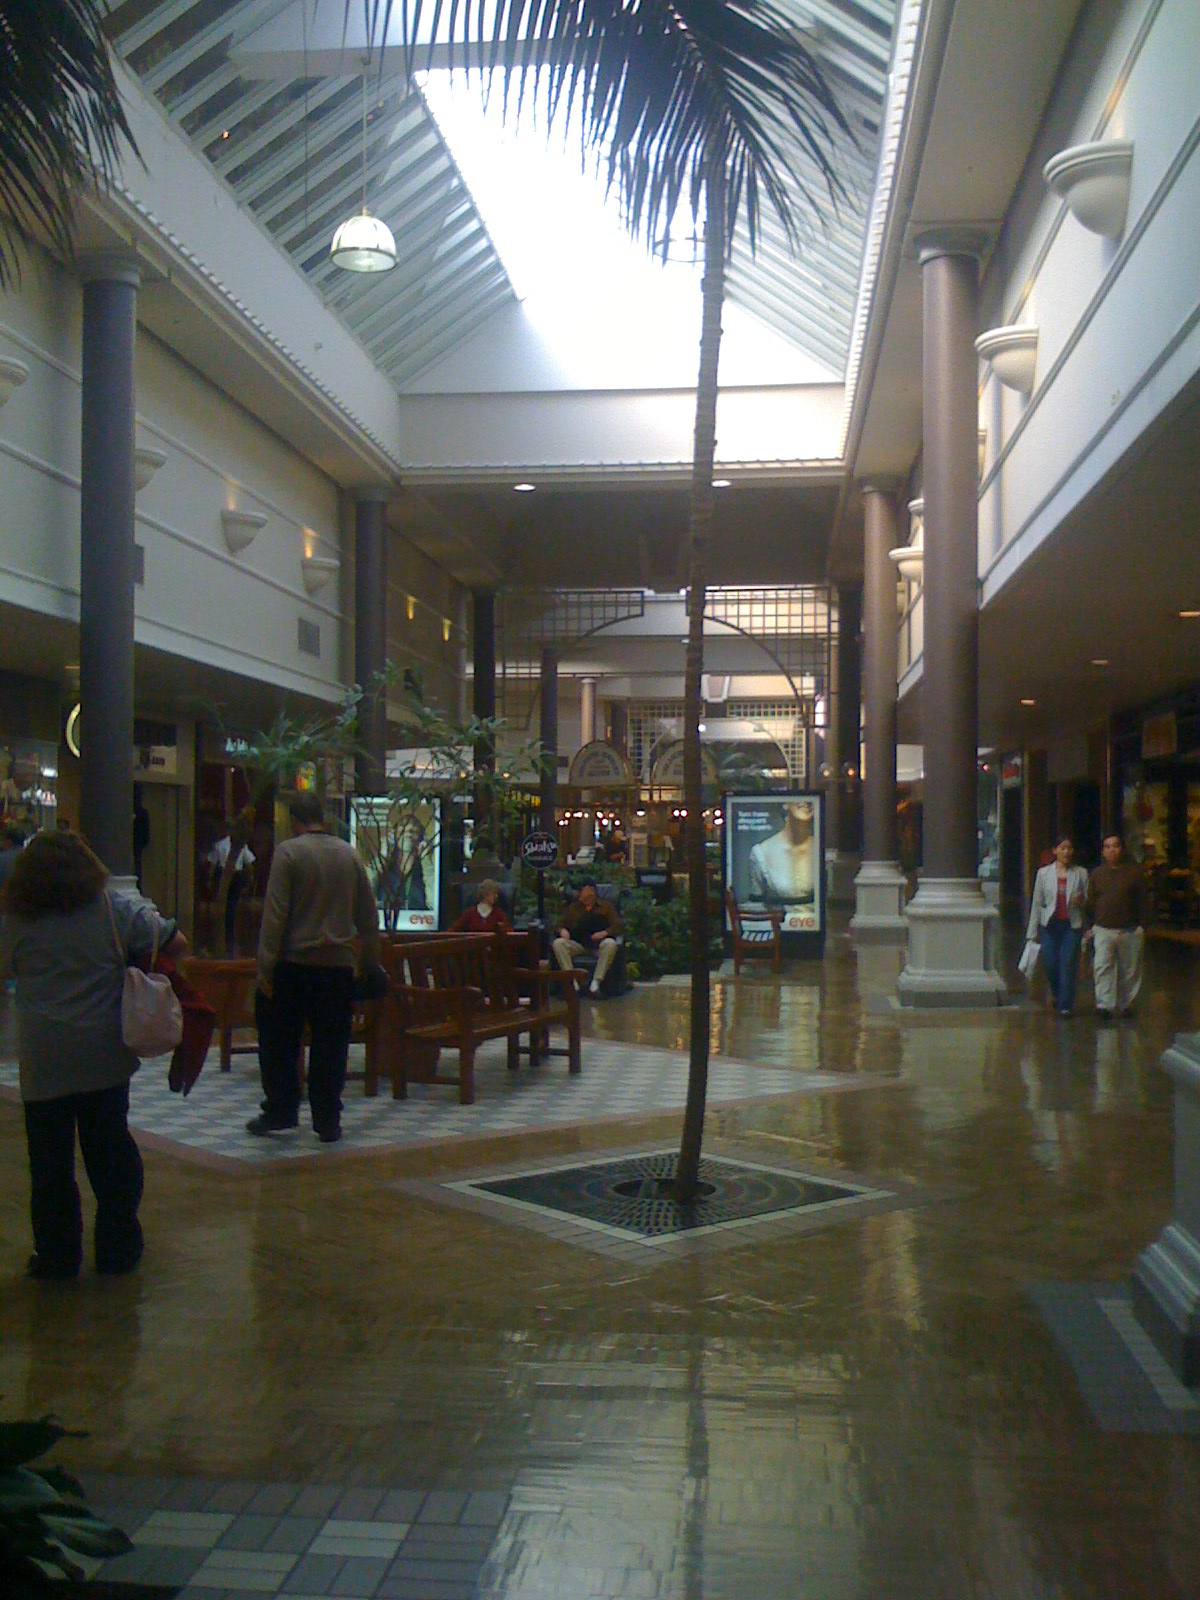 Northgate Mall is a shopping mall located in San Rafael, California, 15 miles (24 km) north of the Golden Gate Bridge. It's the largest of three shopping centers in San Rafael called Northgate. It is managed by The Macerich obmenvisitami.tk of stores and services: